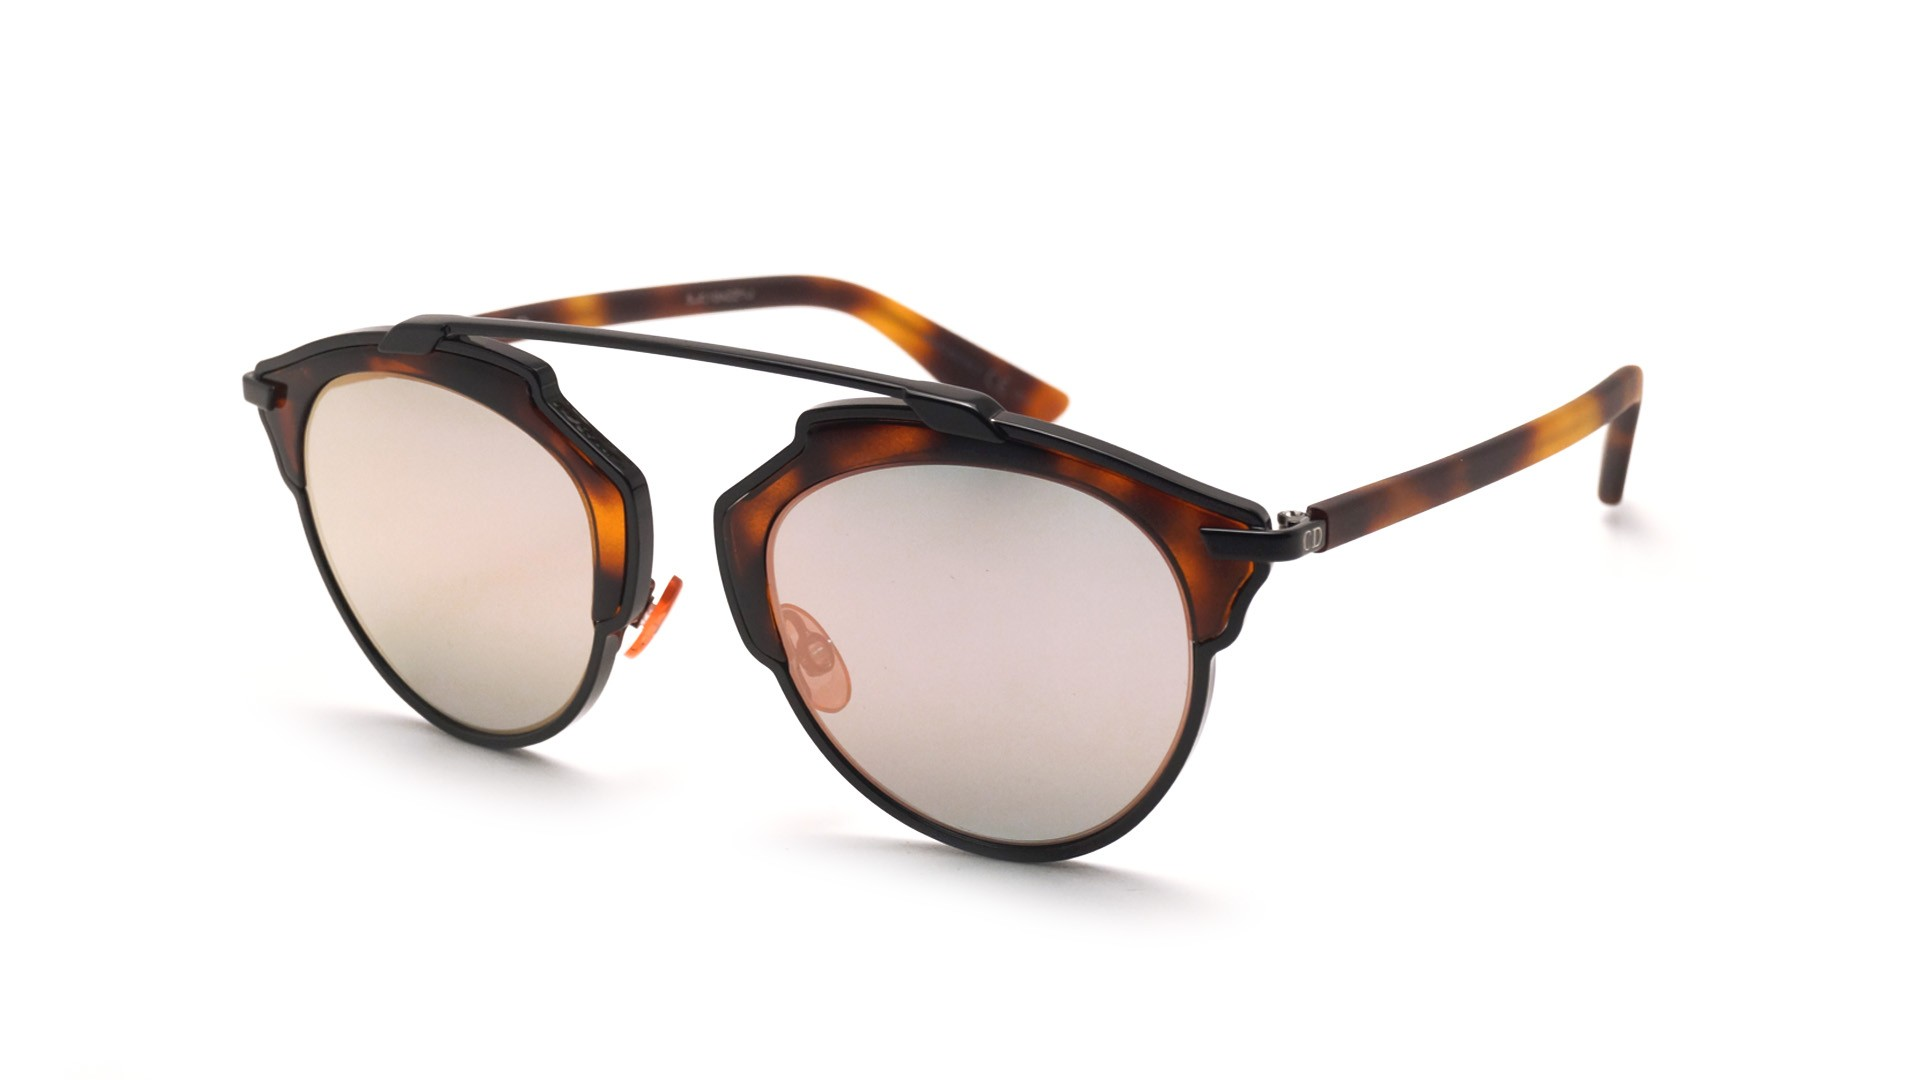 098fca79f288 Sunglasses Dior Soreal Tortoise XO20J 48-22 Medium Flash